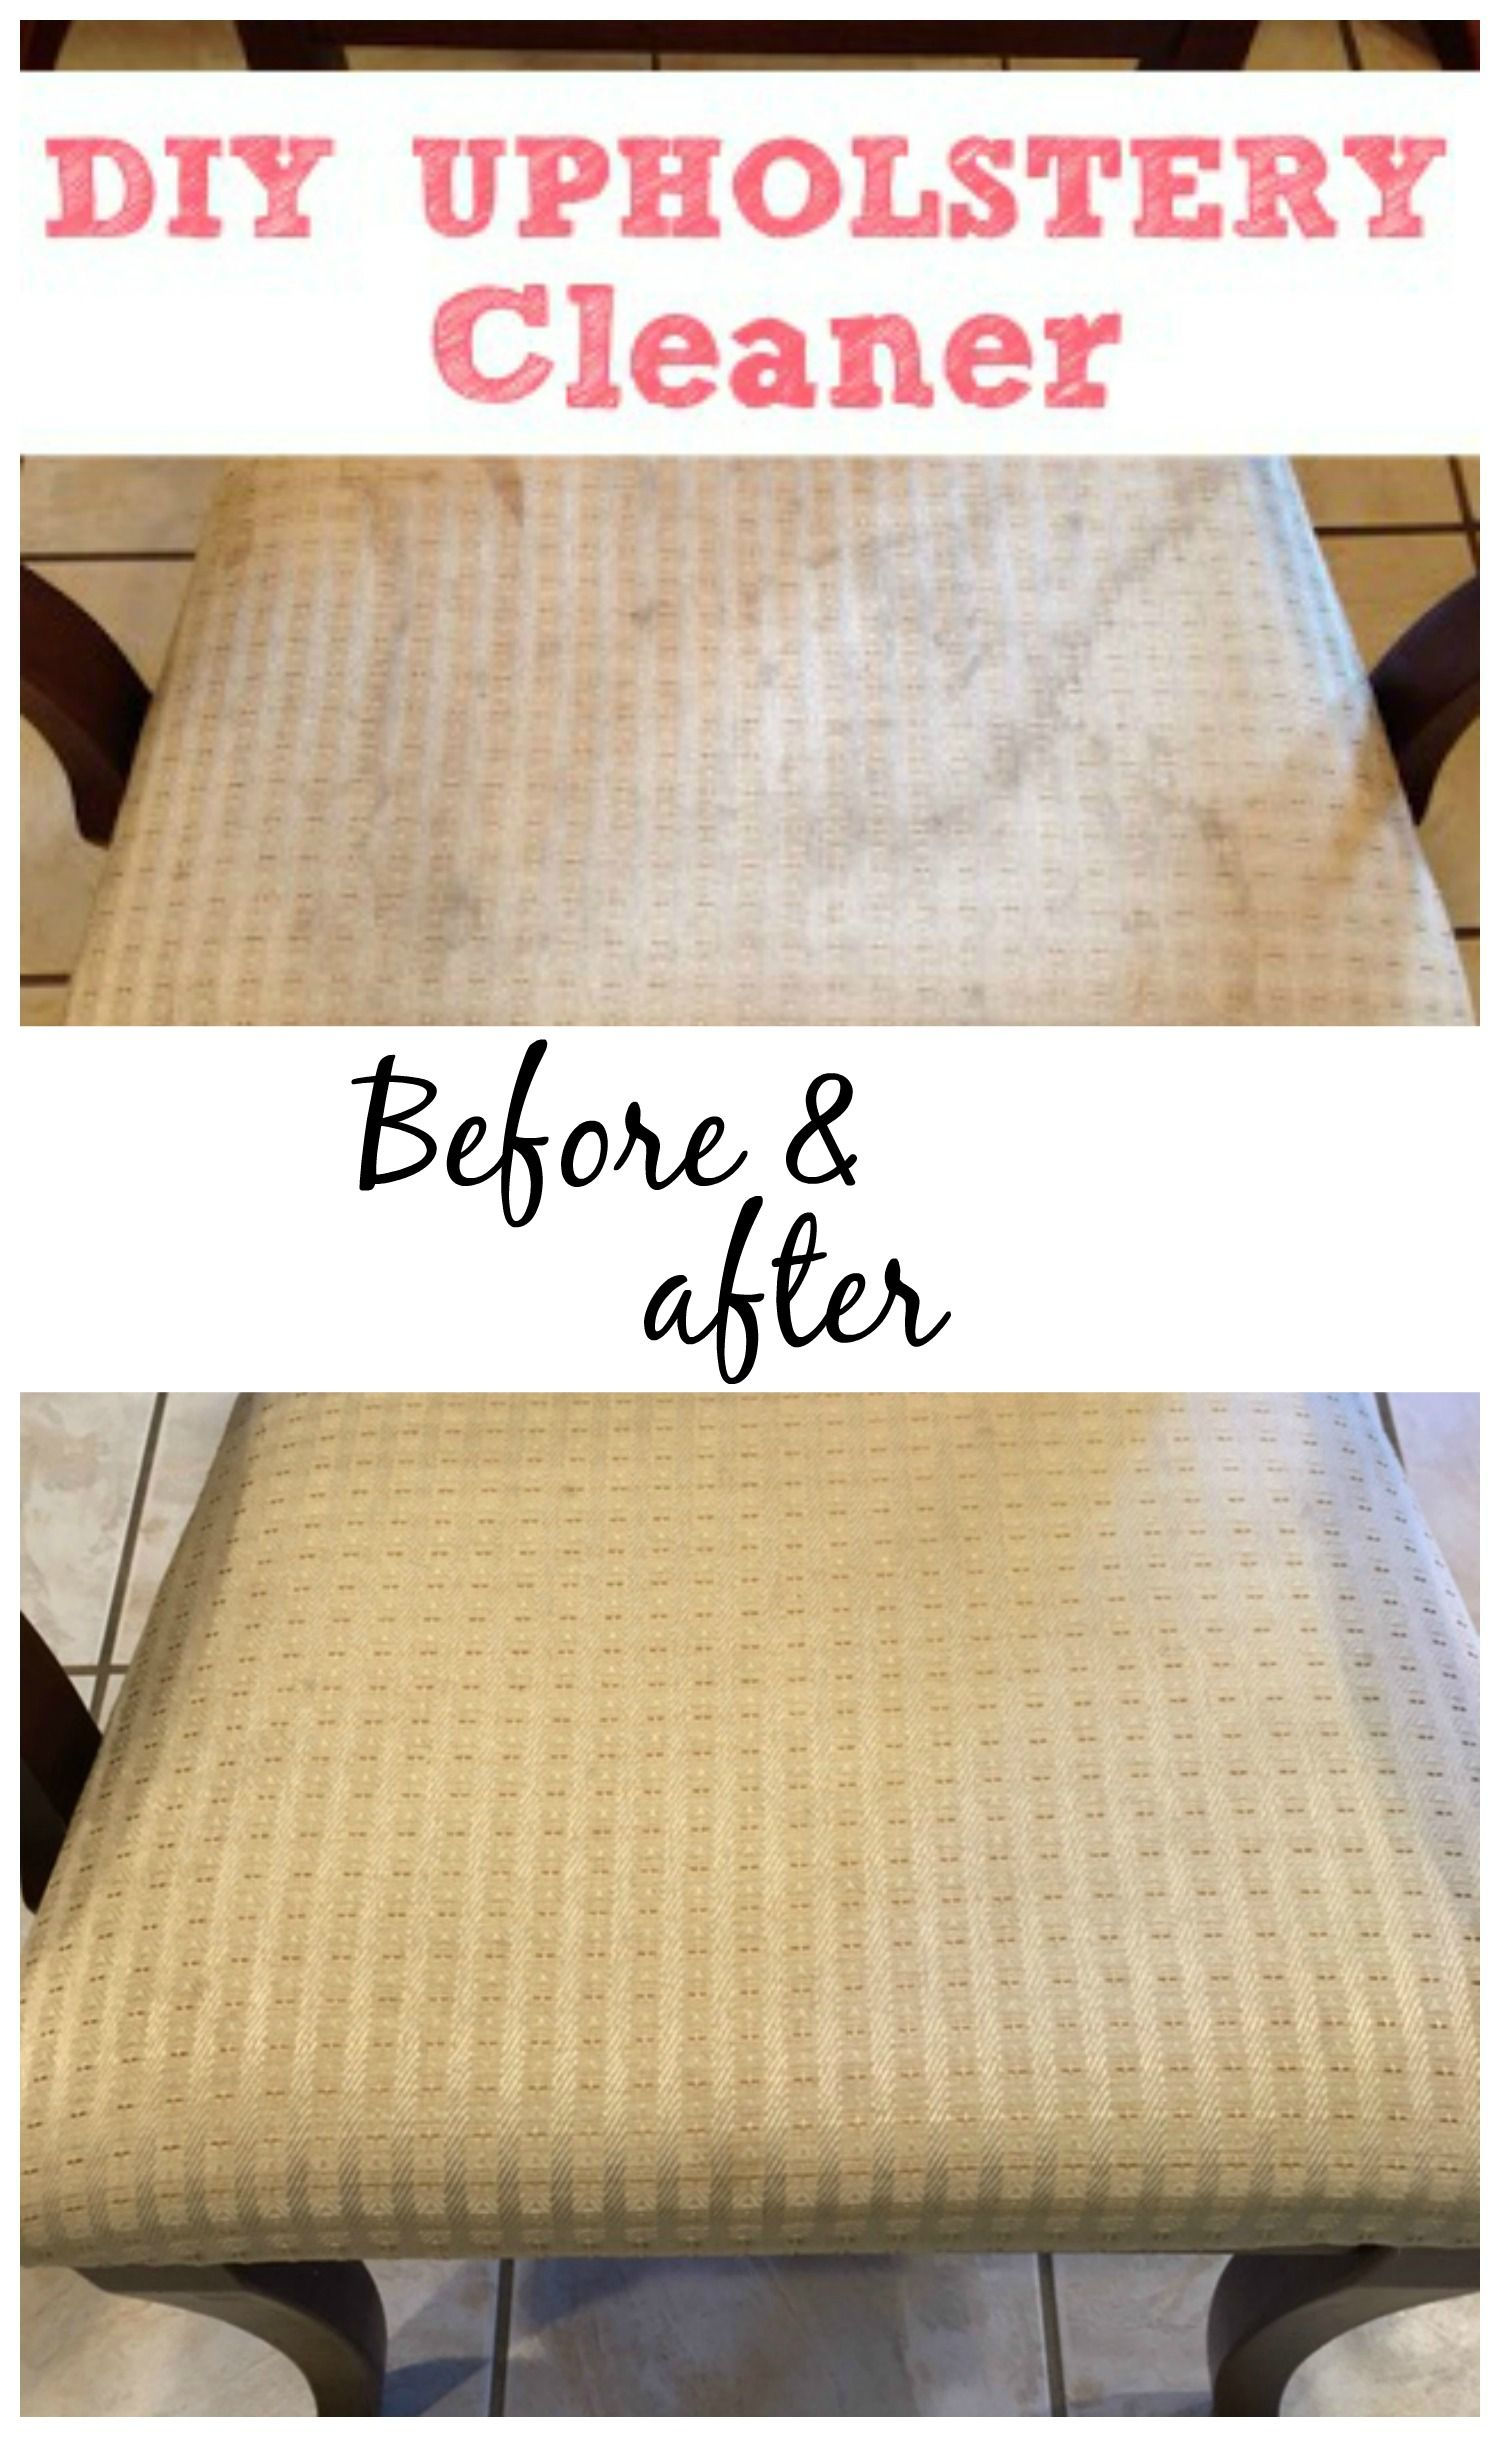 Homemade Upholstery Cleaner Homemade Upholstery Cleaner Diy Upholstery Cleaner Upholstery Cleaner